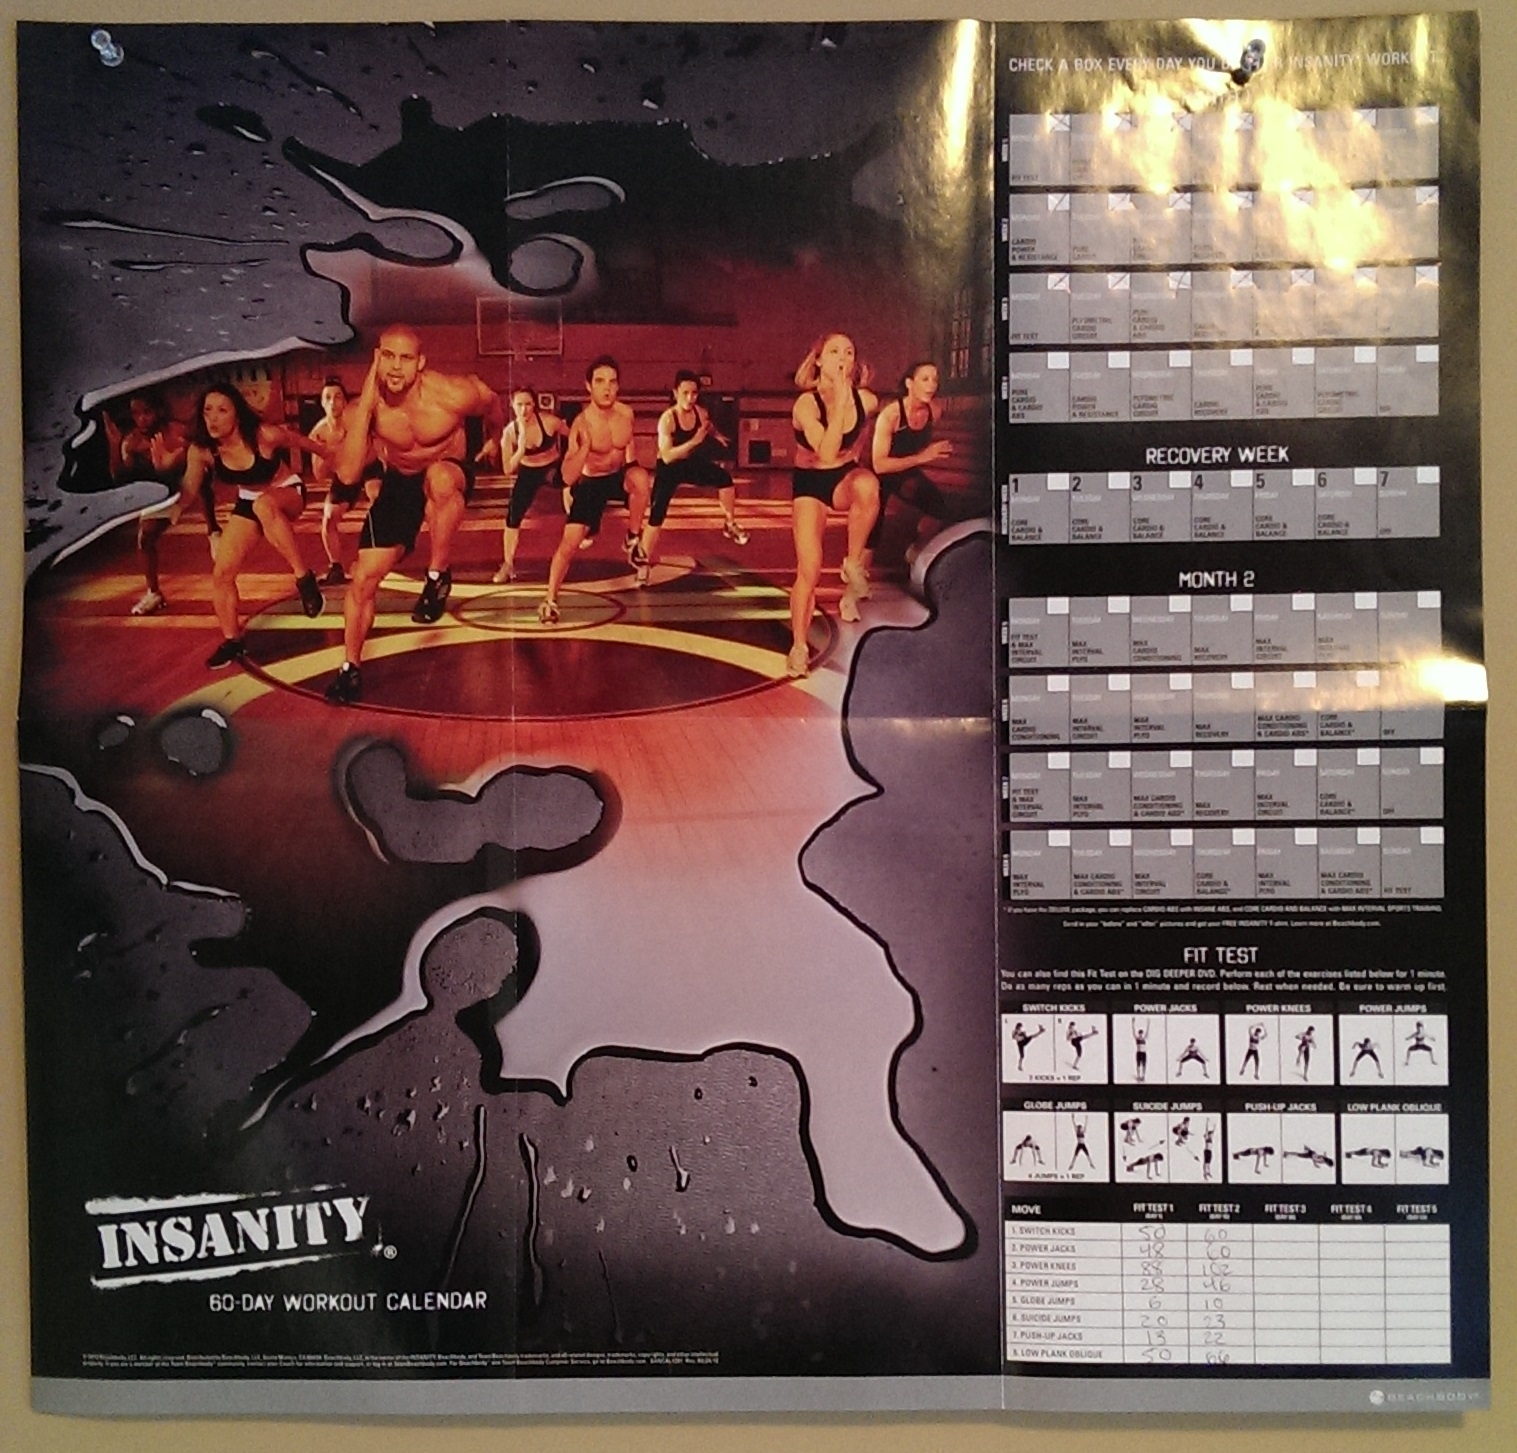 Shaun T | Progress Is Perfection with The Insanity 60 Day Wall Calendar